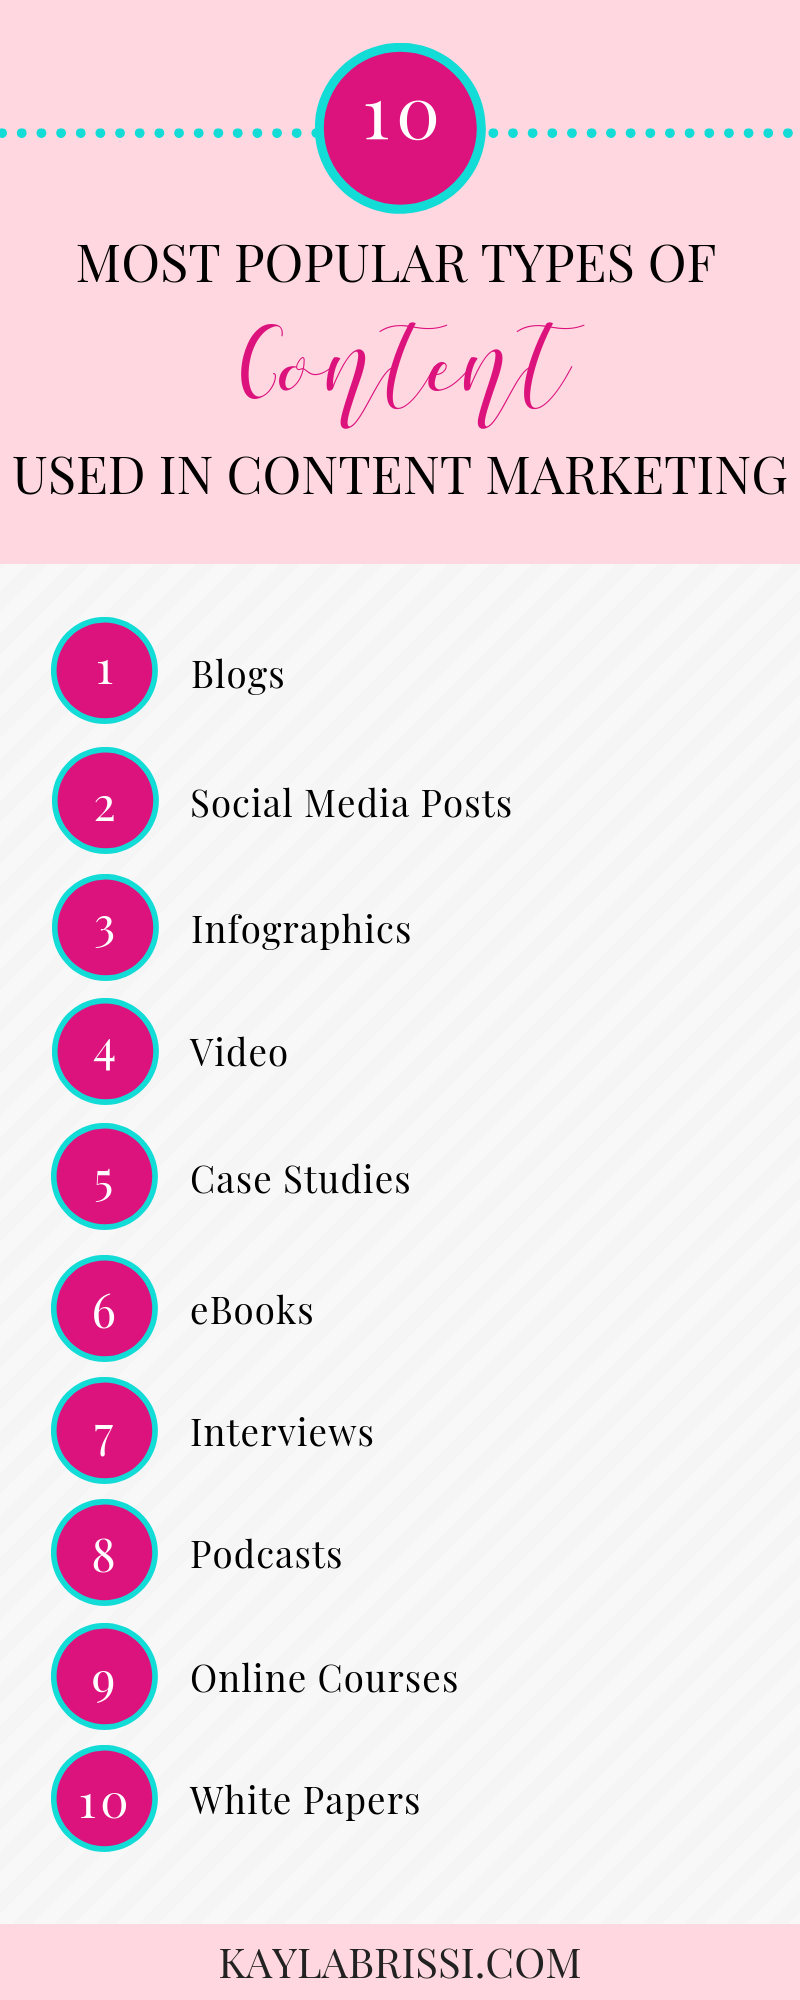 10 MOST POPULAR TYPES OF CONTENT USED IN CONTENT MARKETING INFOGRAPHIC